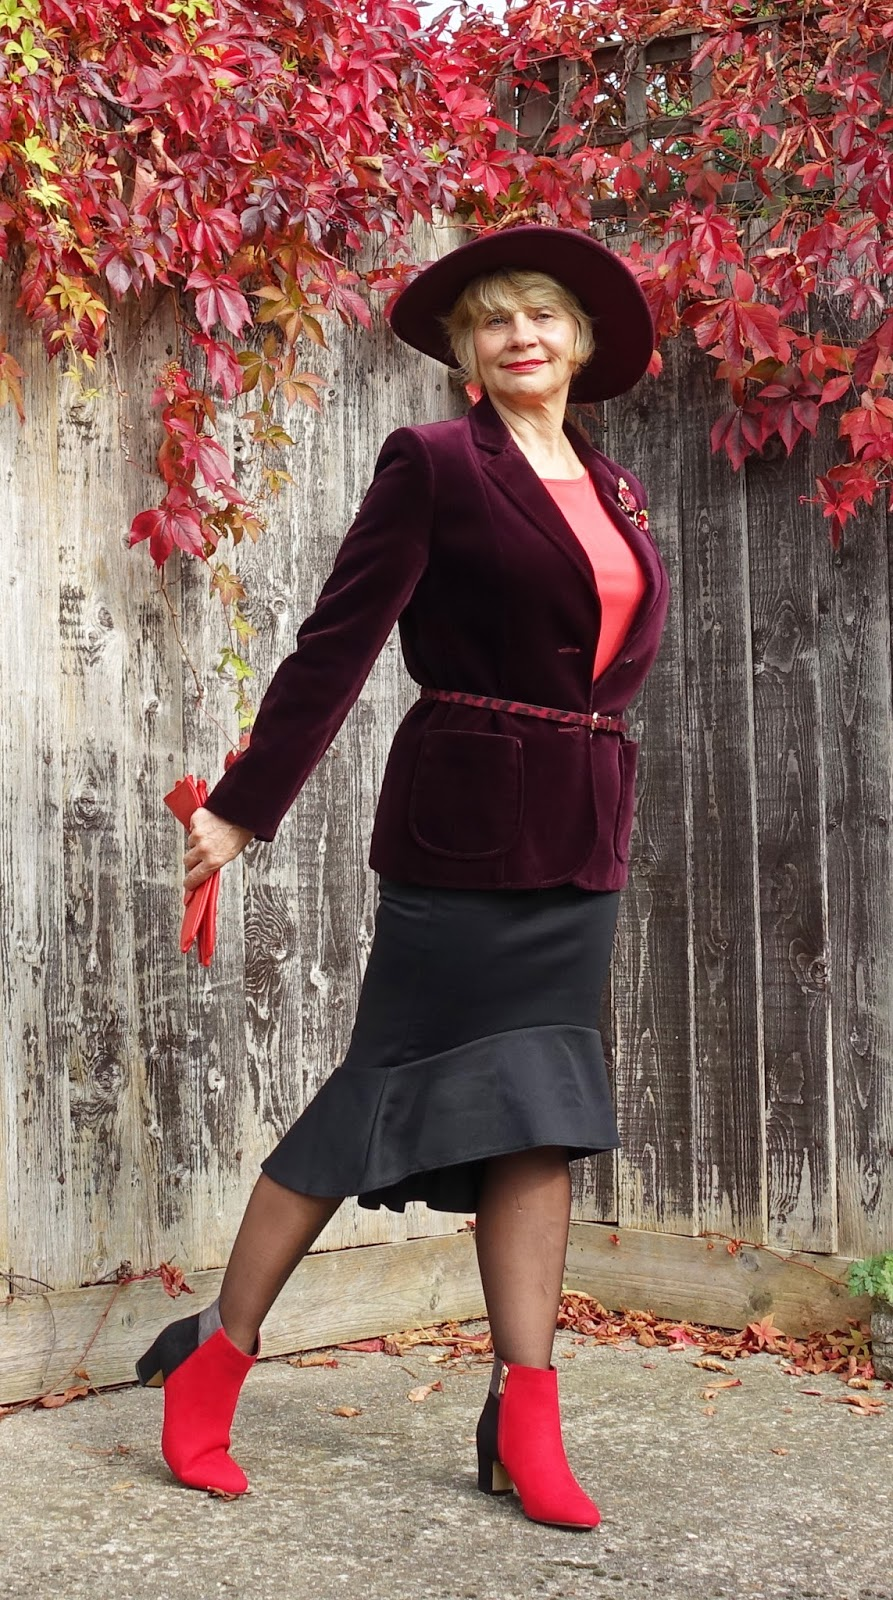 Hats look great with tailored outfits like this velvet jacket and trumpet hem skirt